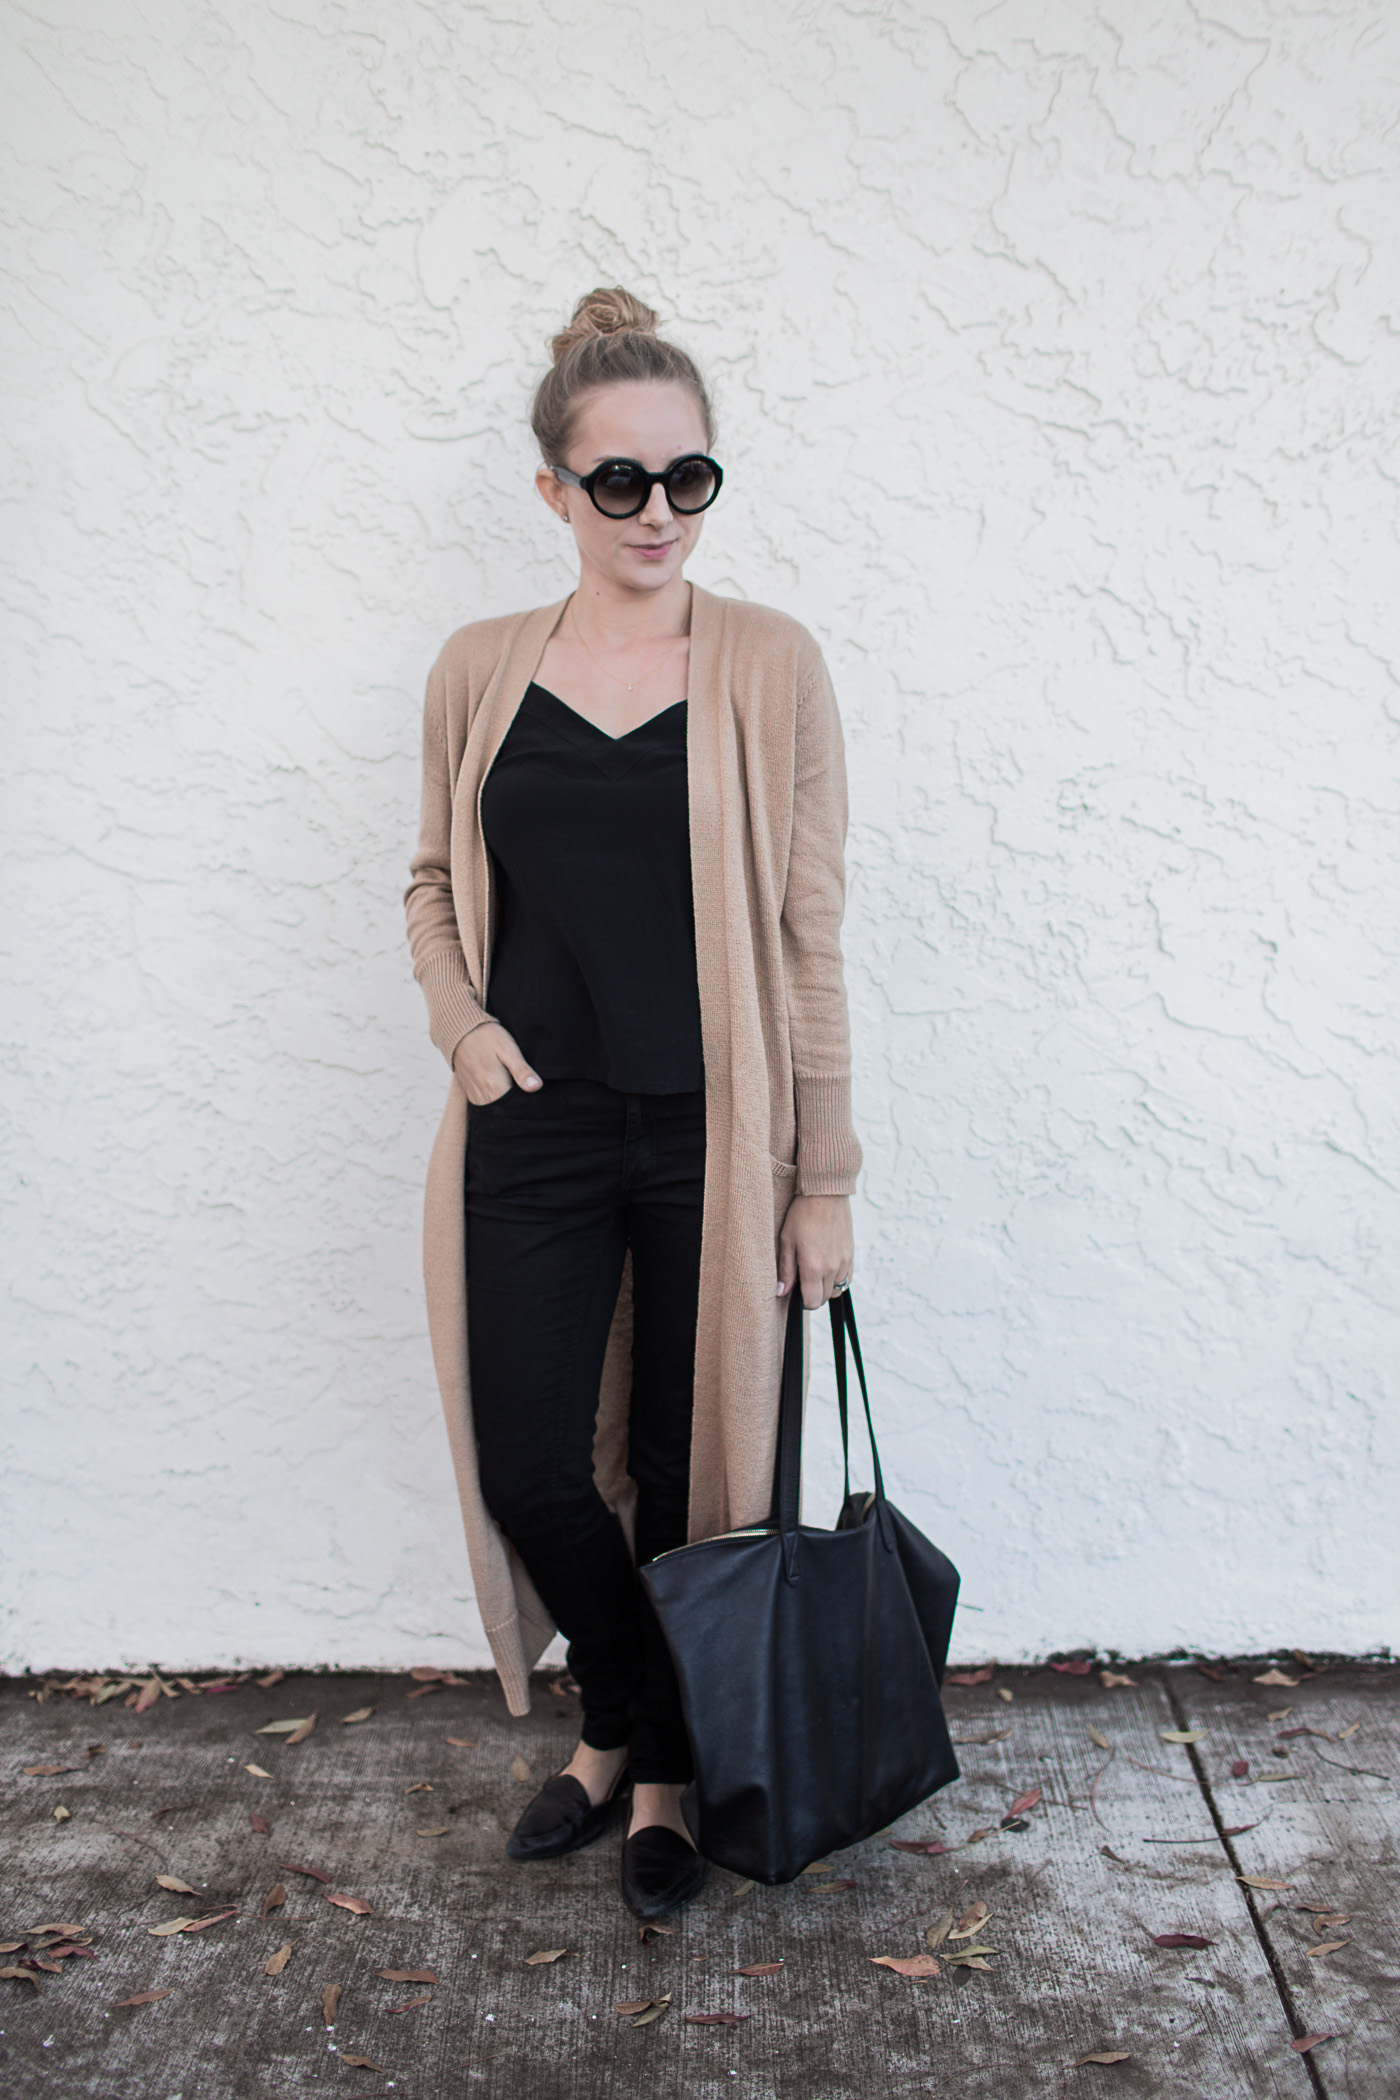 Black skinny denim in a casual outfit. 3 outfits featuring black skinny denim.